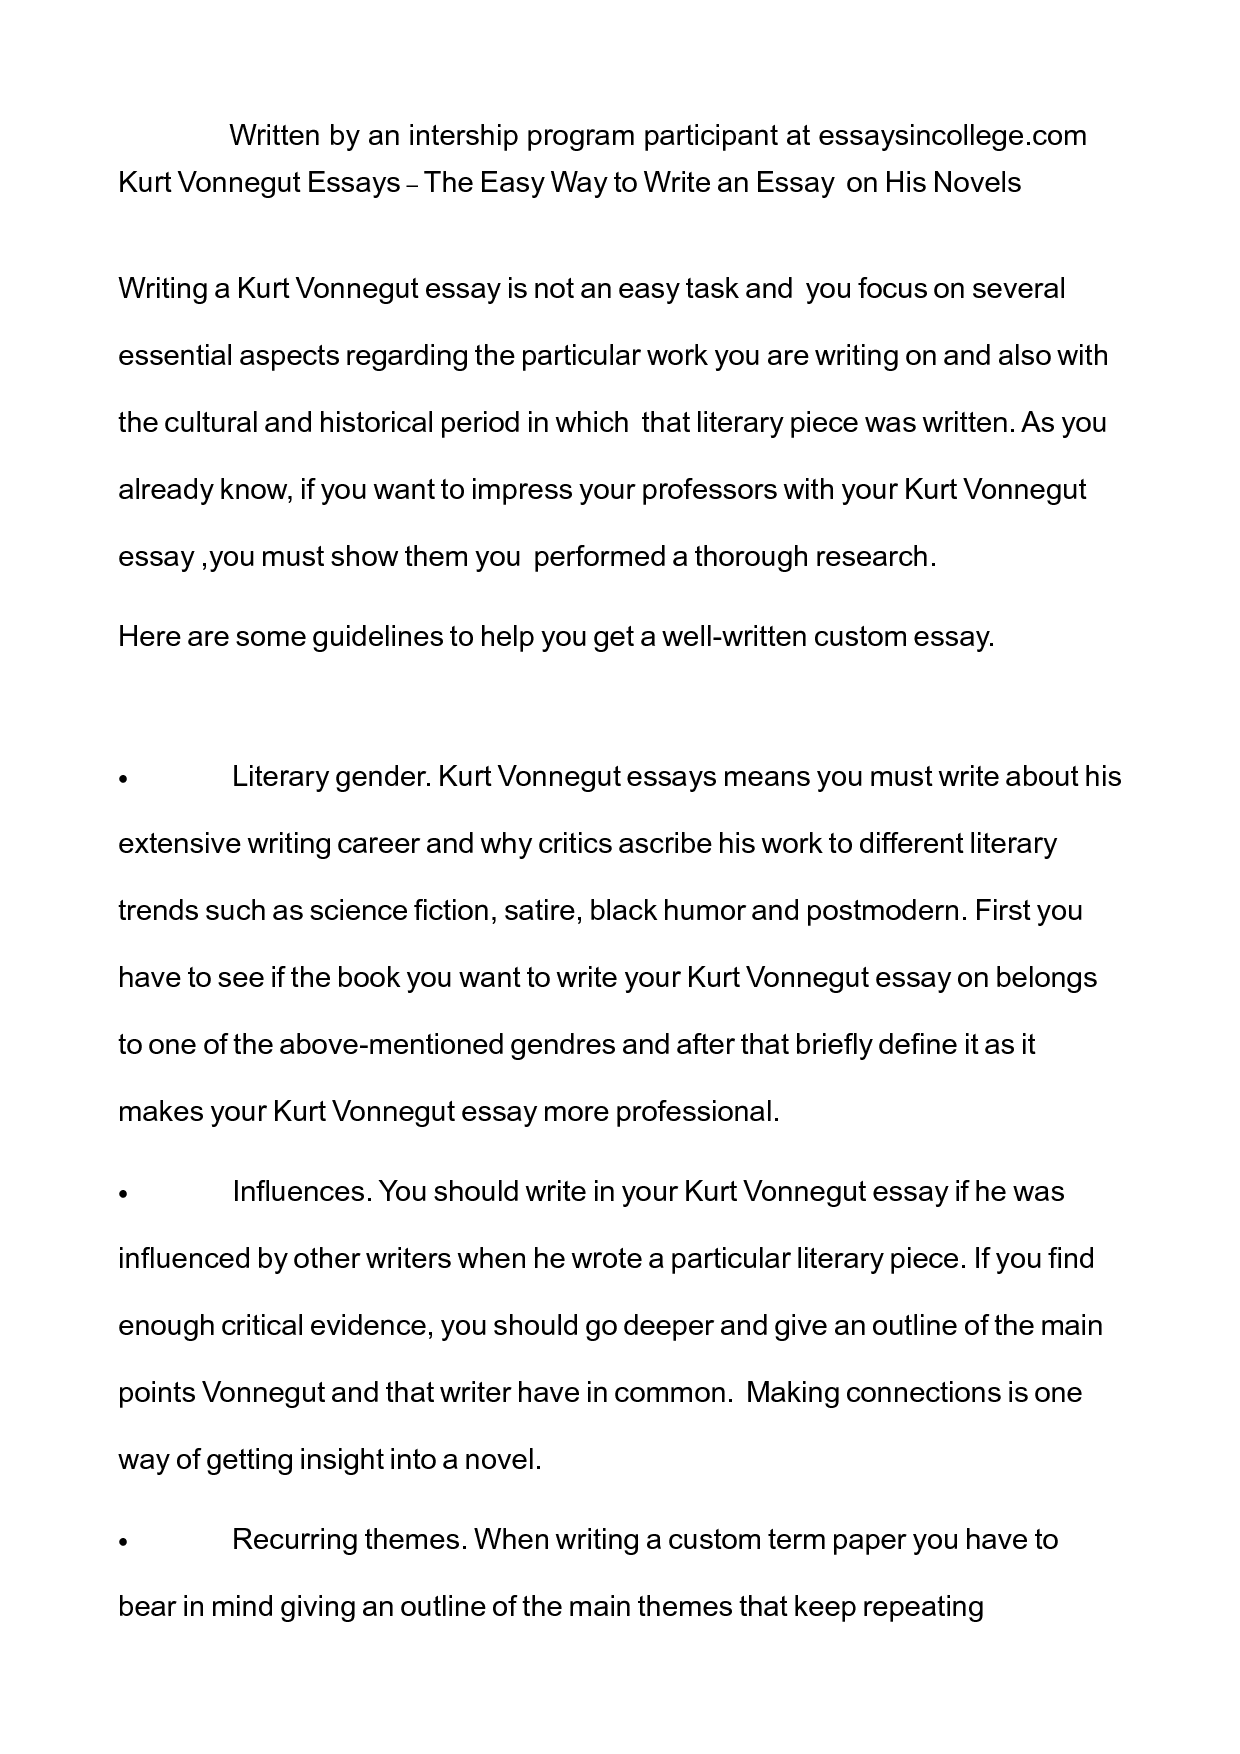 001 Easy Essay Writing Ujolpknqnj Marvelous Examples Ielts Tips Task 2 Topics Full